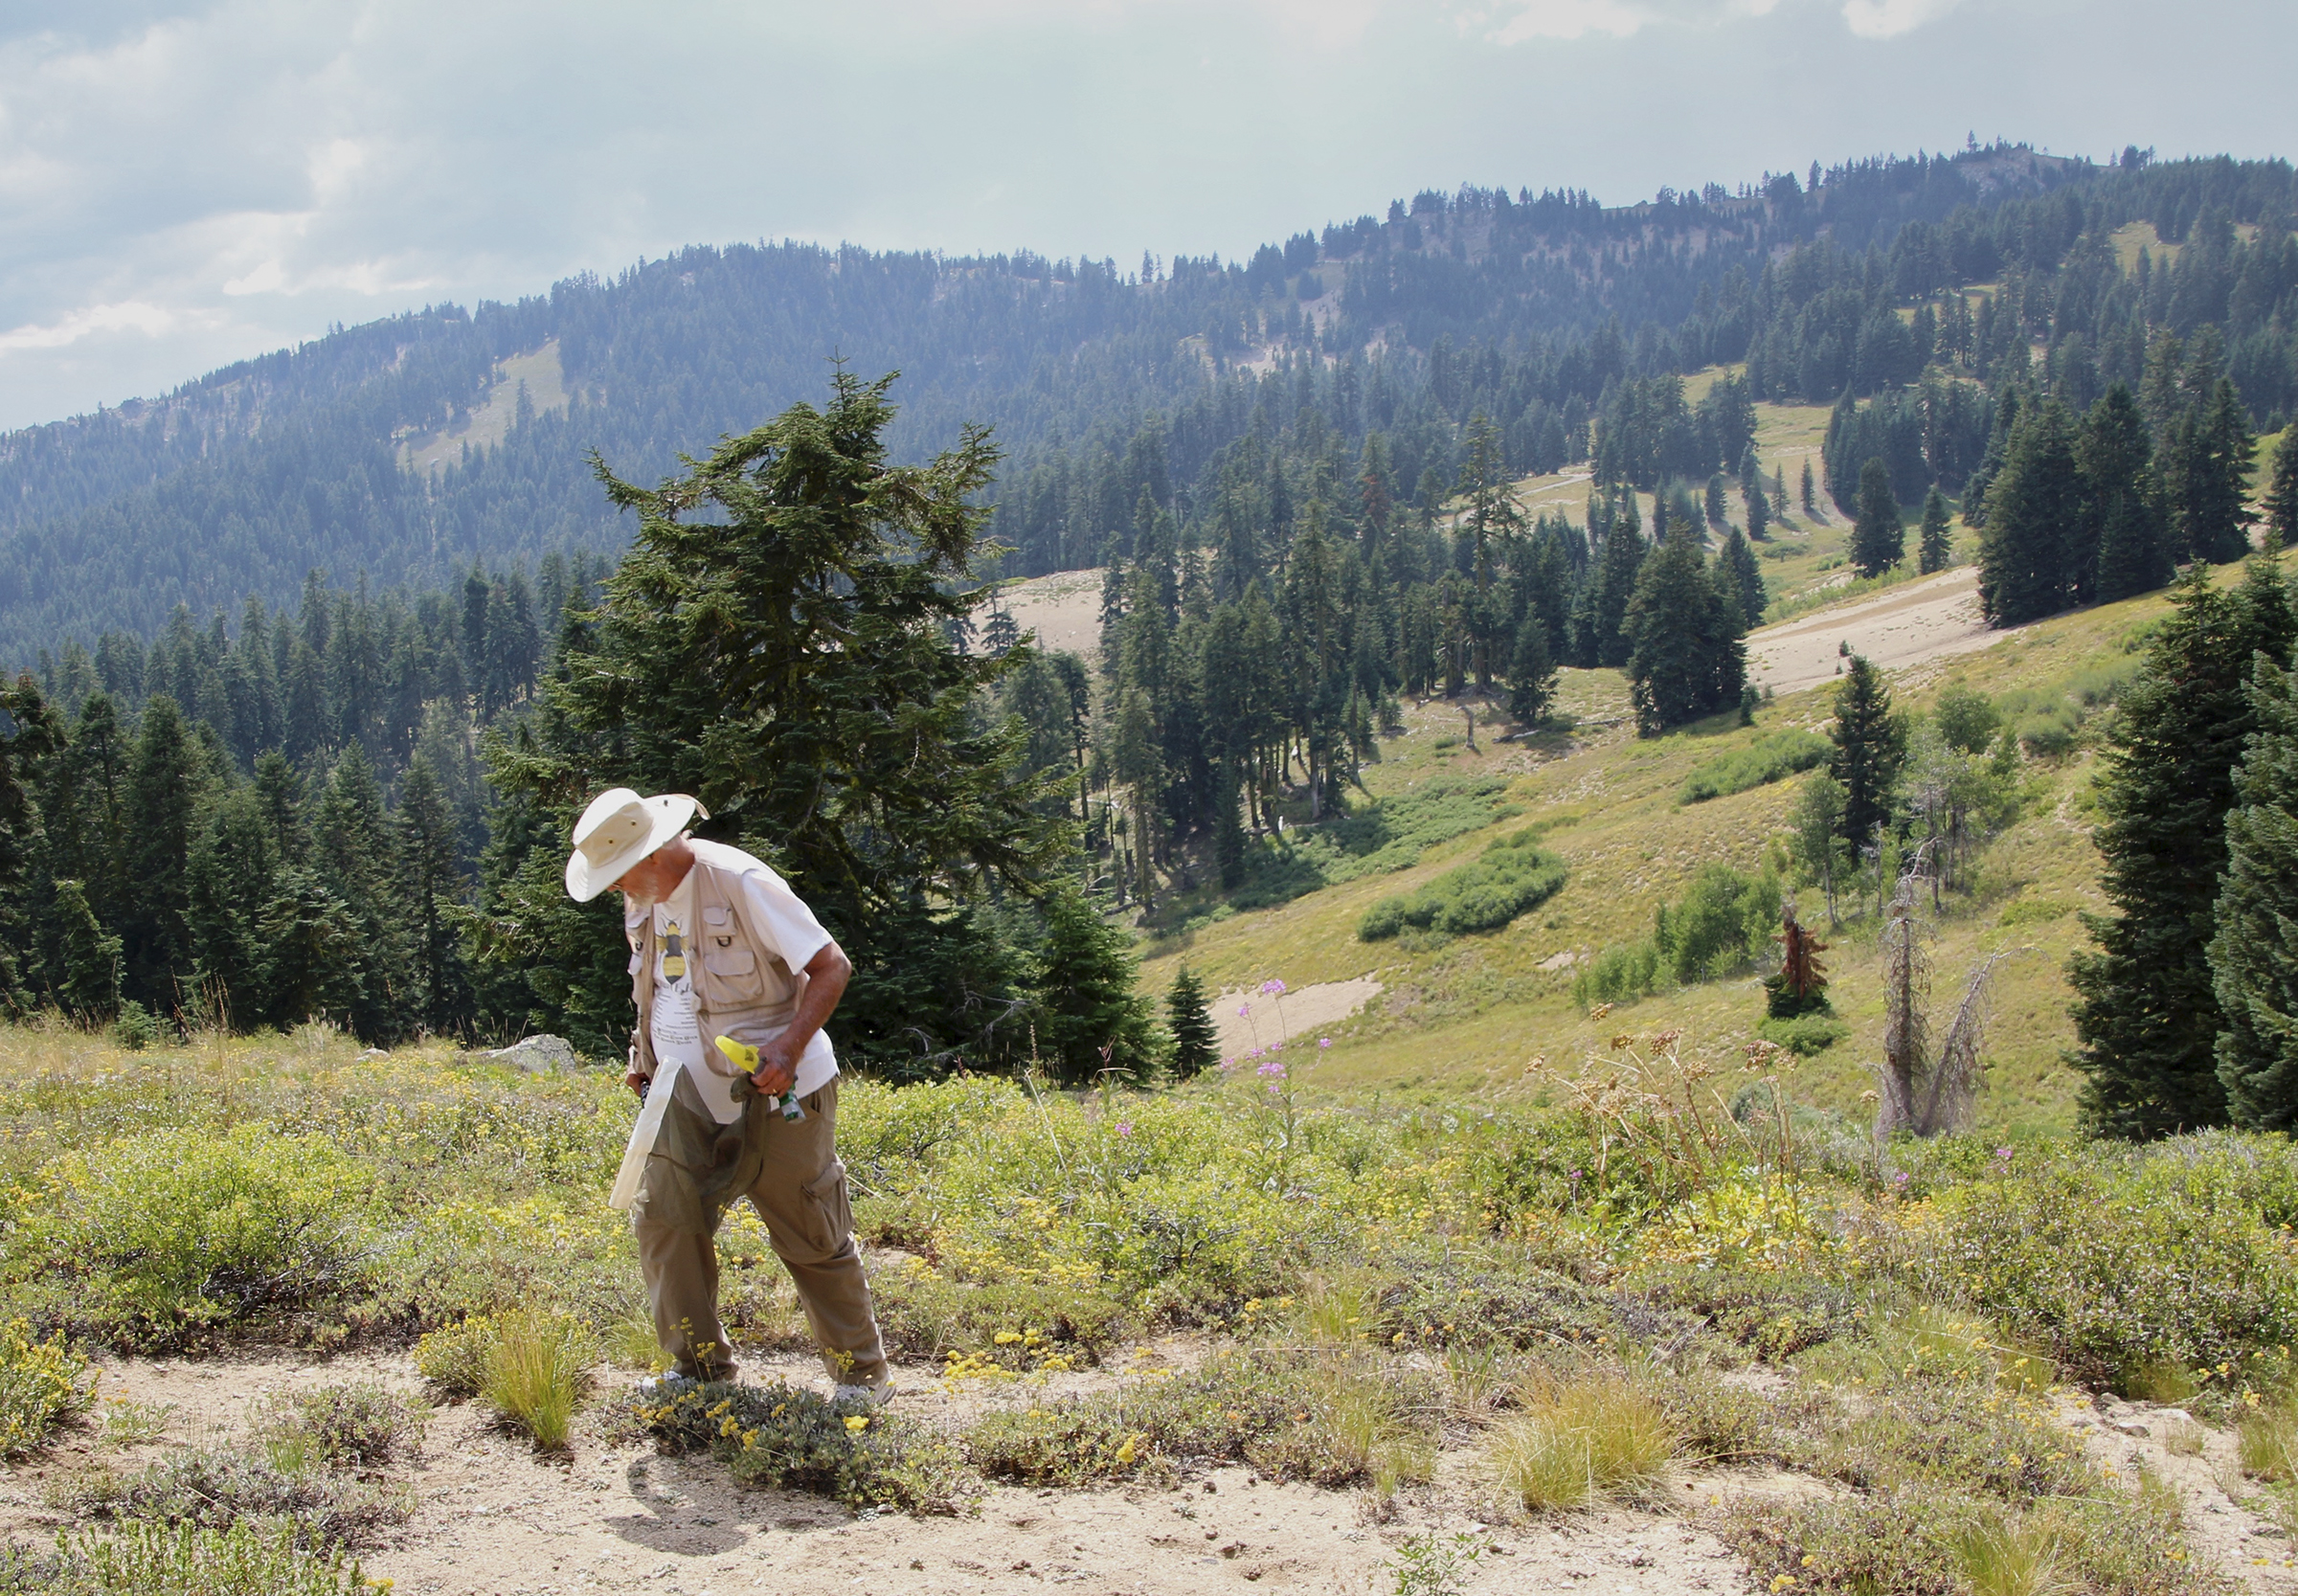 Robin Thorp hunting for Franklin's bumble bee on Mount Ashland in Southern Oregon. (c) Paige Embry